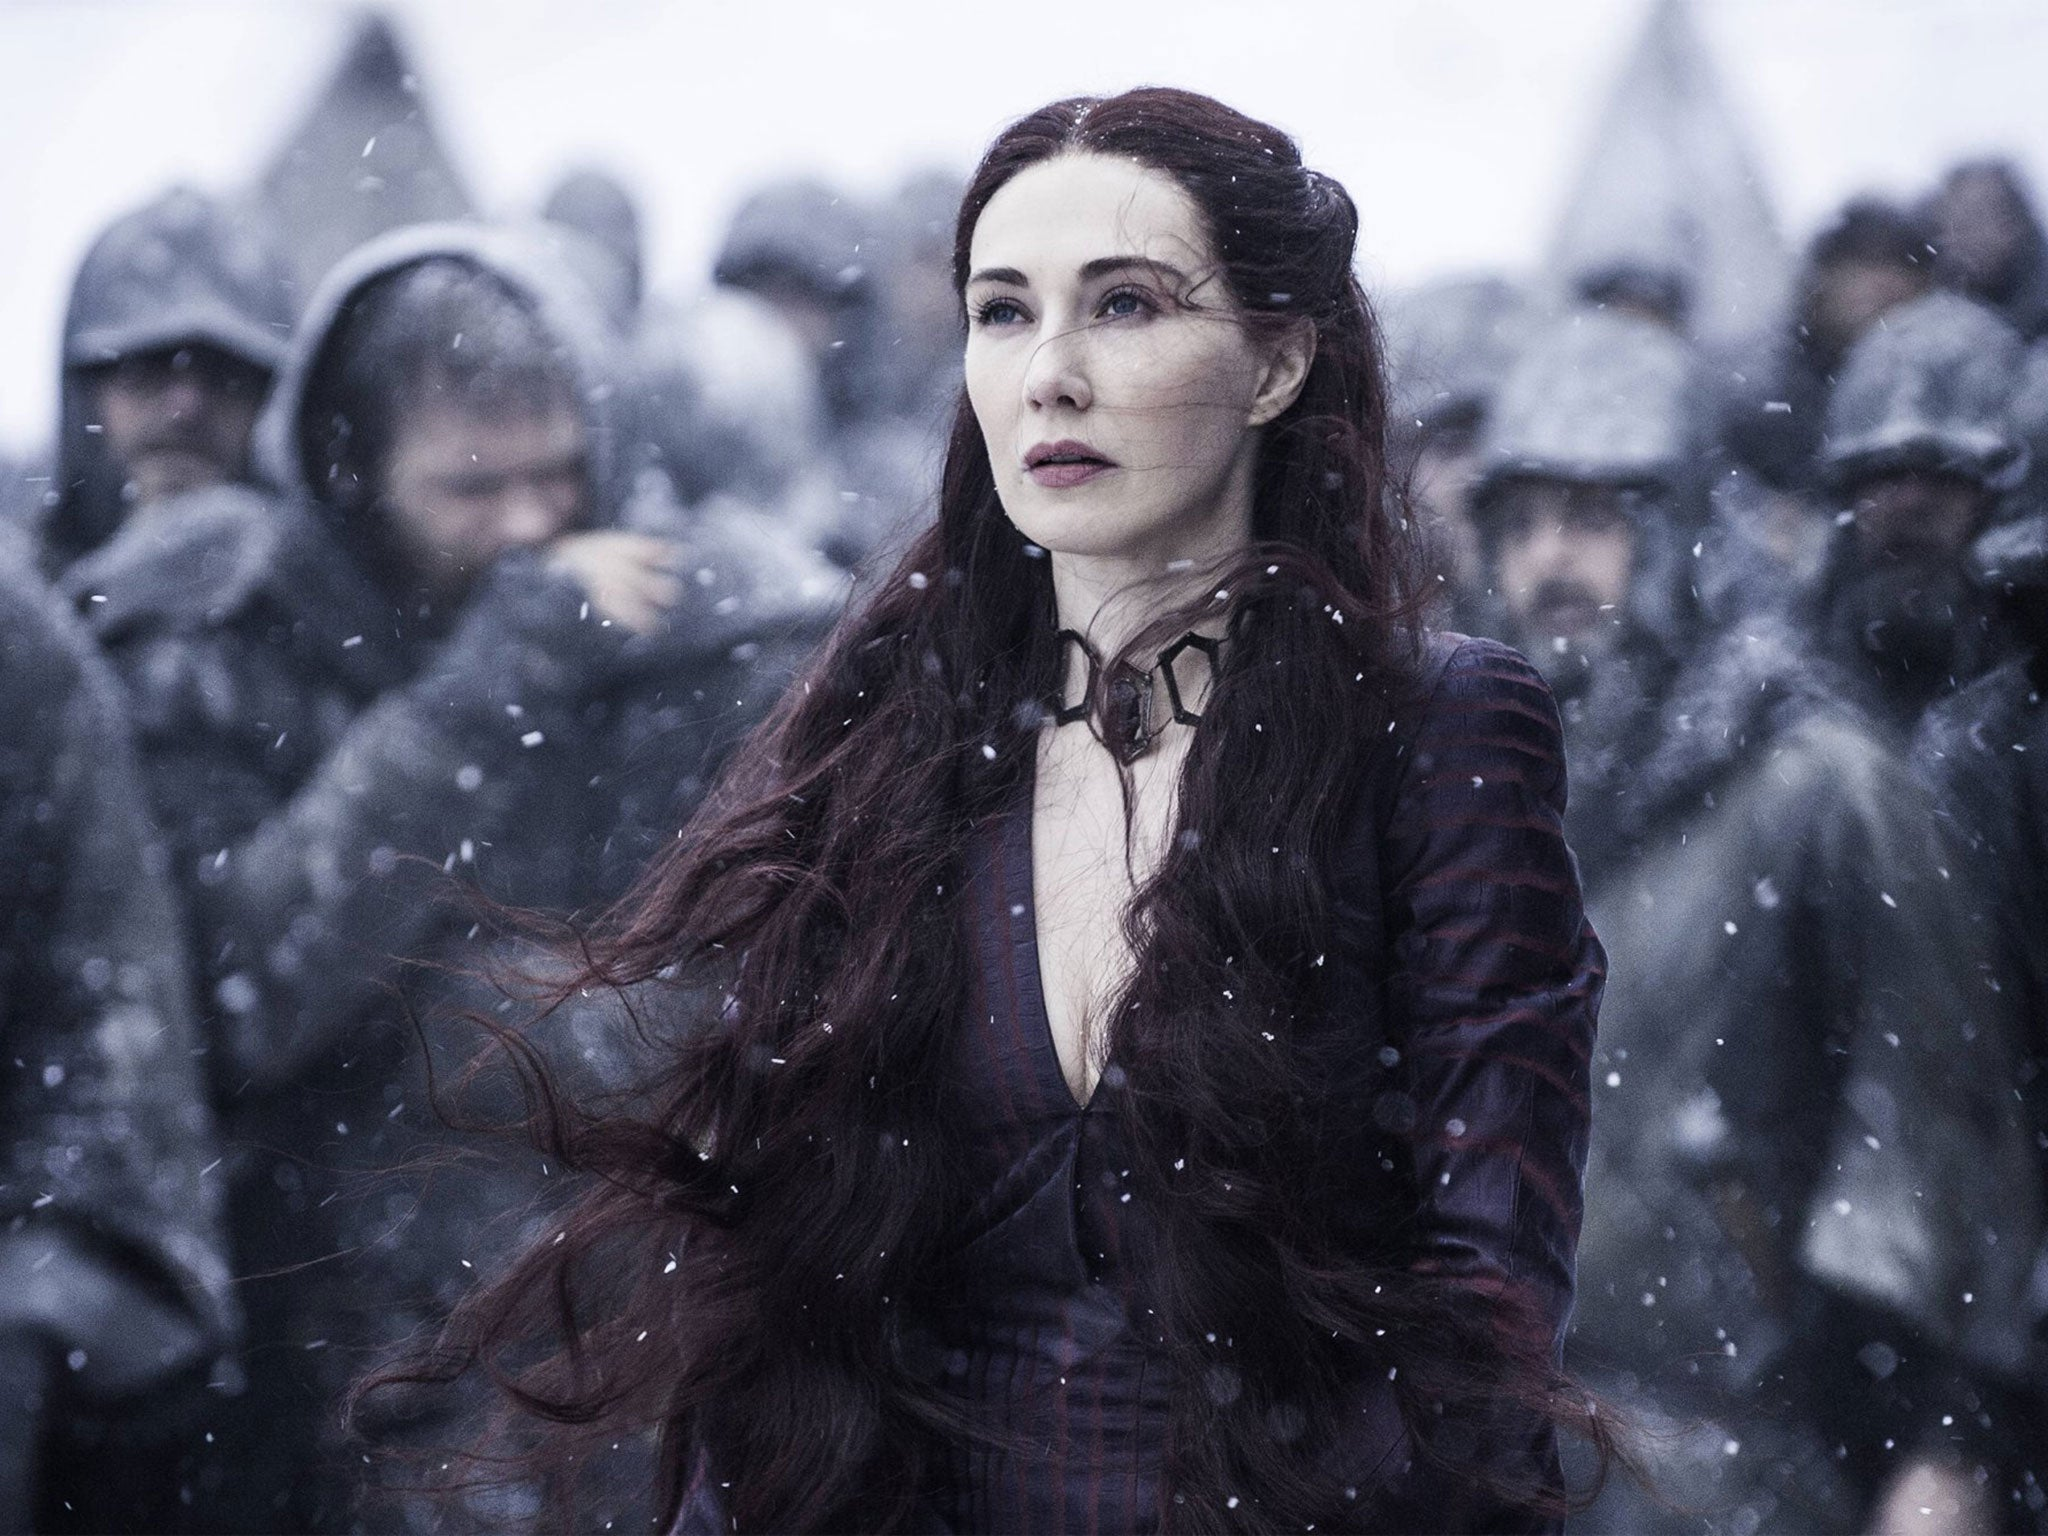 game of thrones season 6 melisandre twist could fit perfectly with jon snow is azor ahai theory the independent